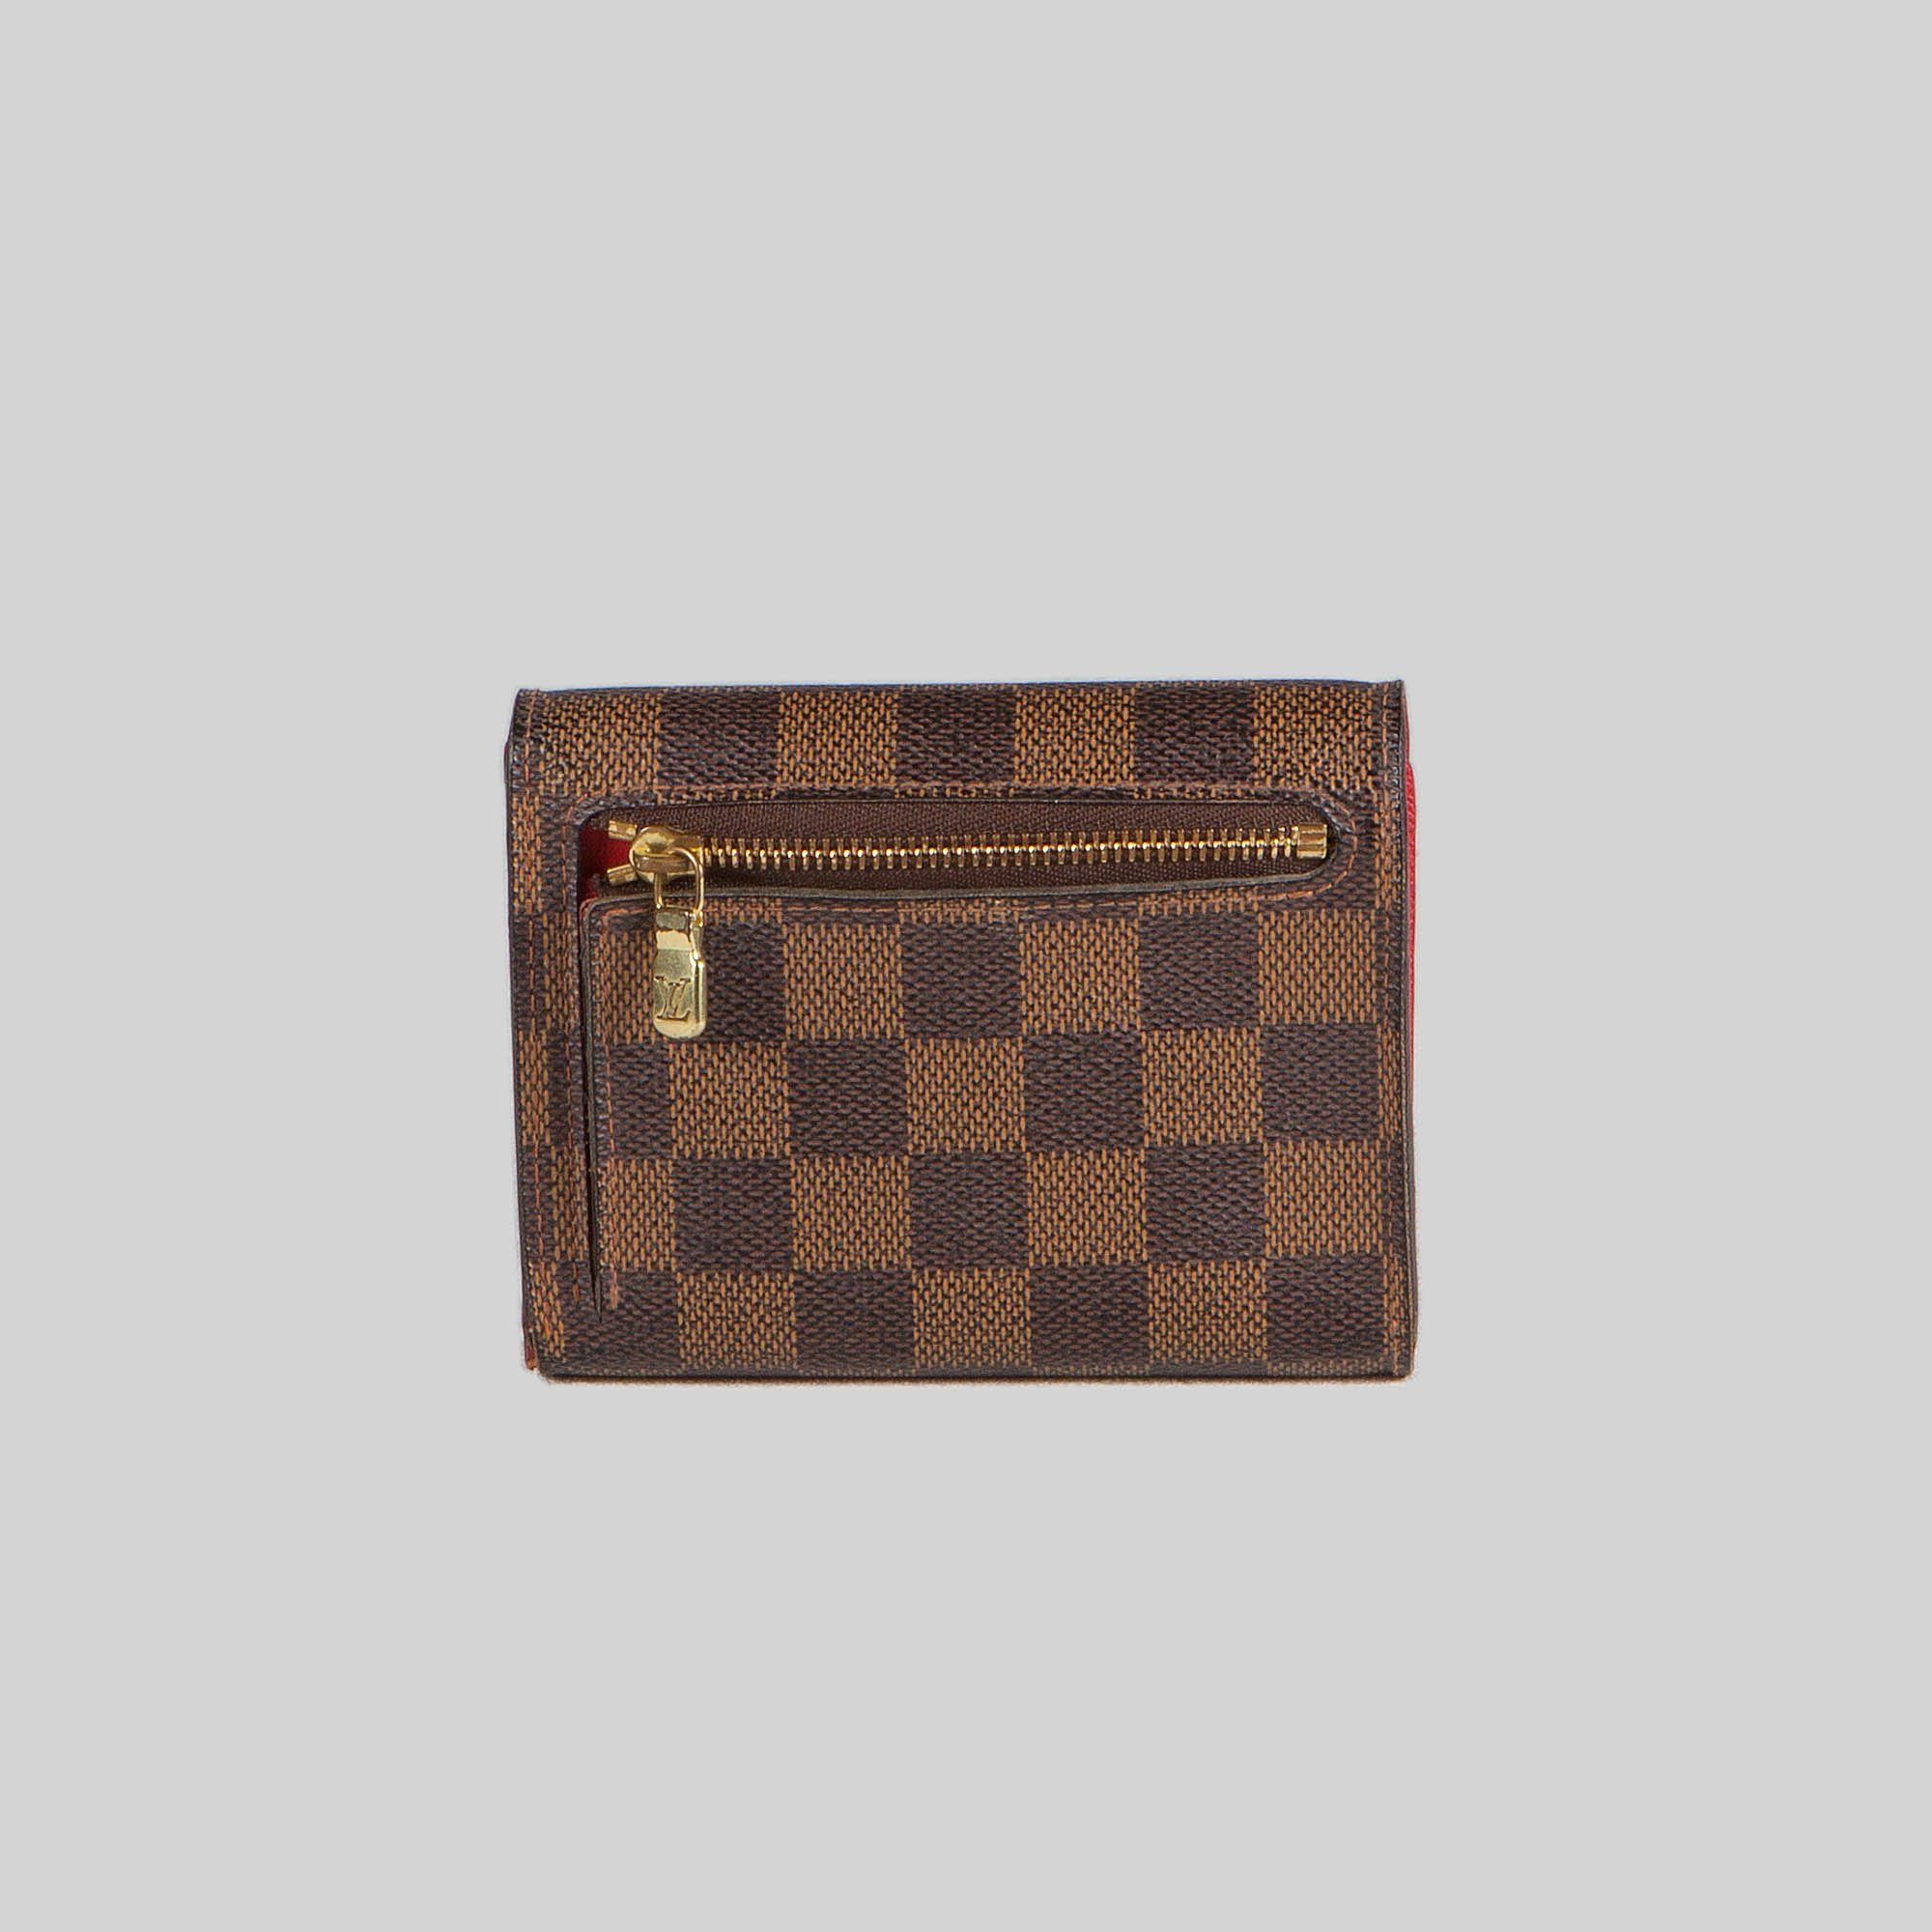 Louis Vuitton Damier Ebene Koala Wallet